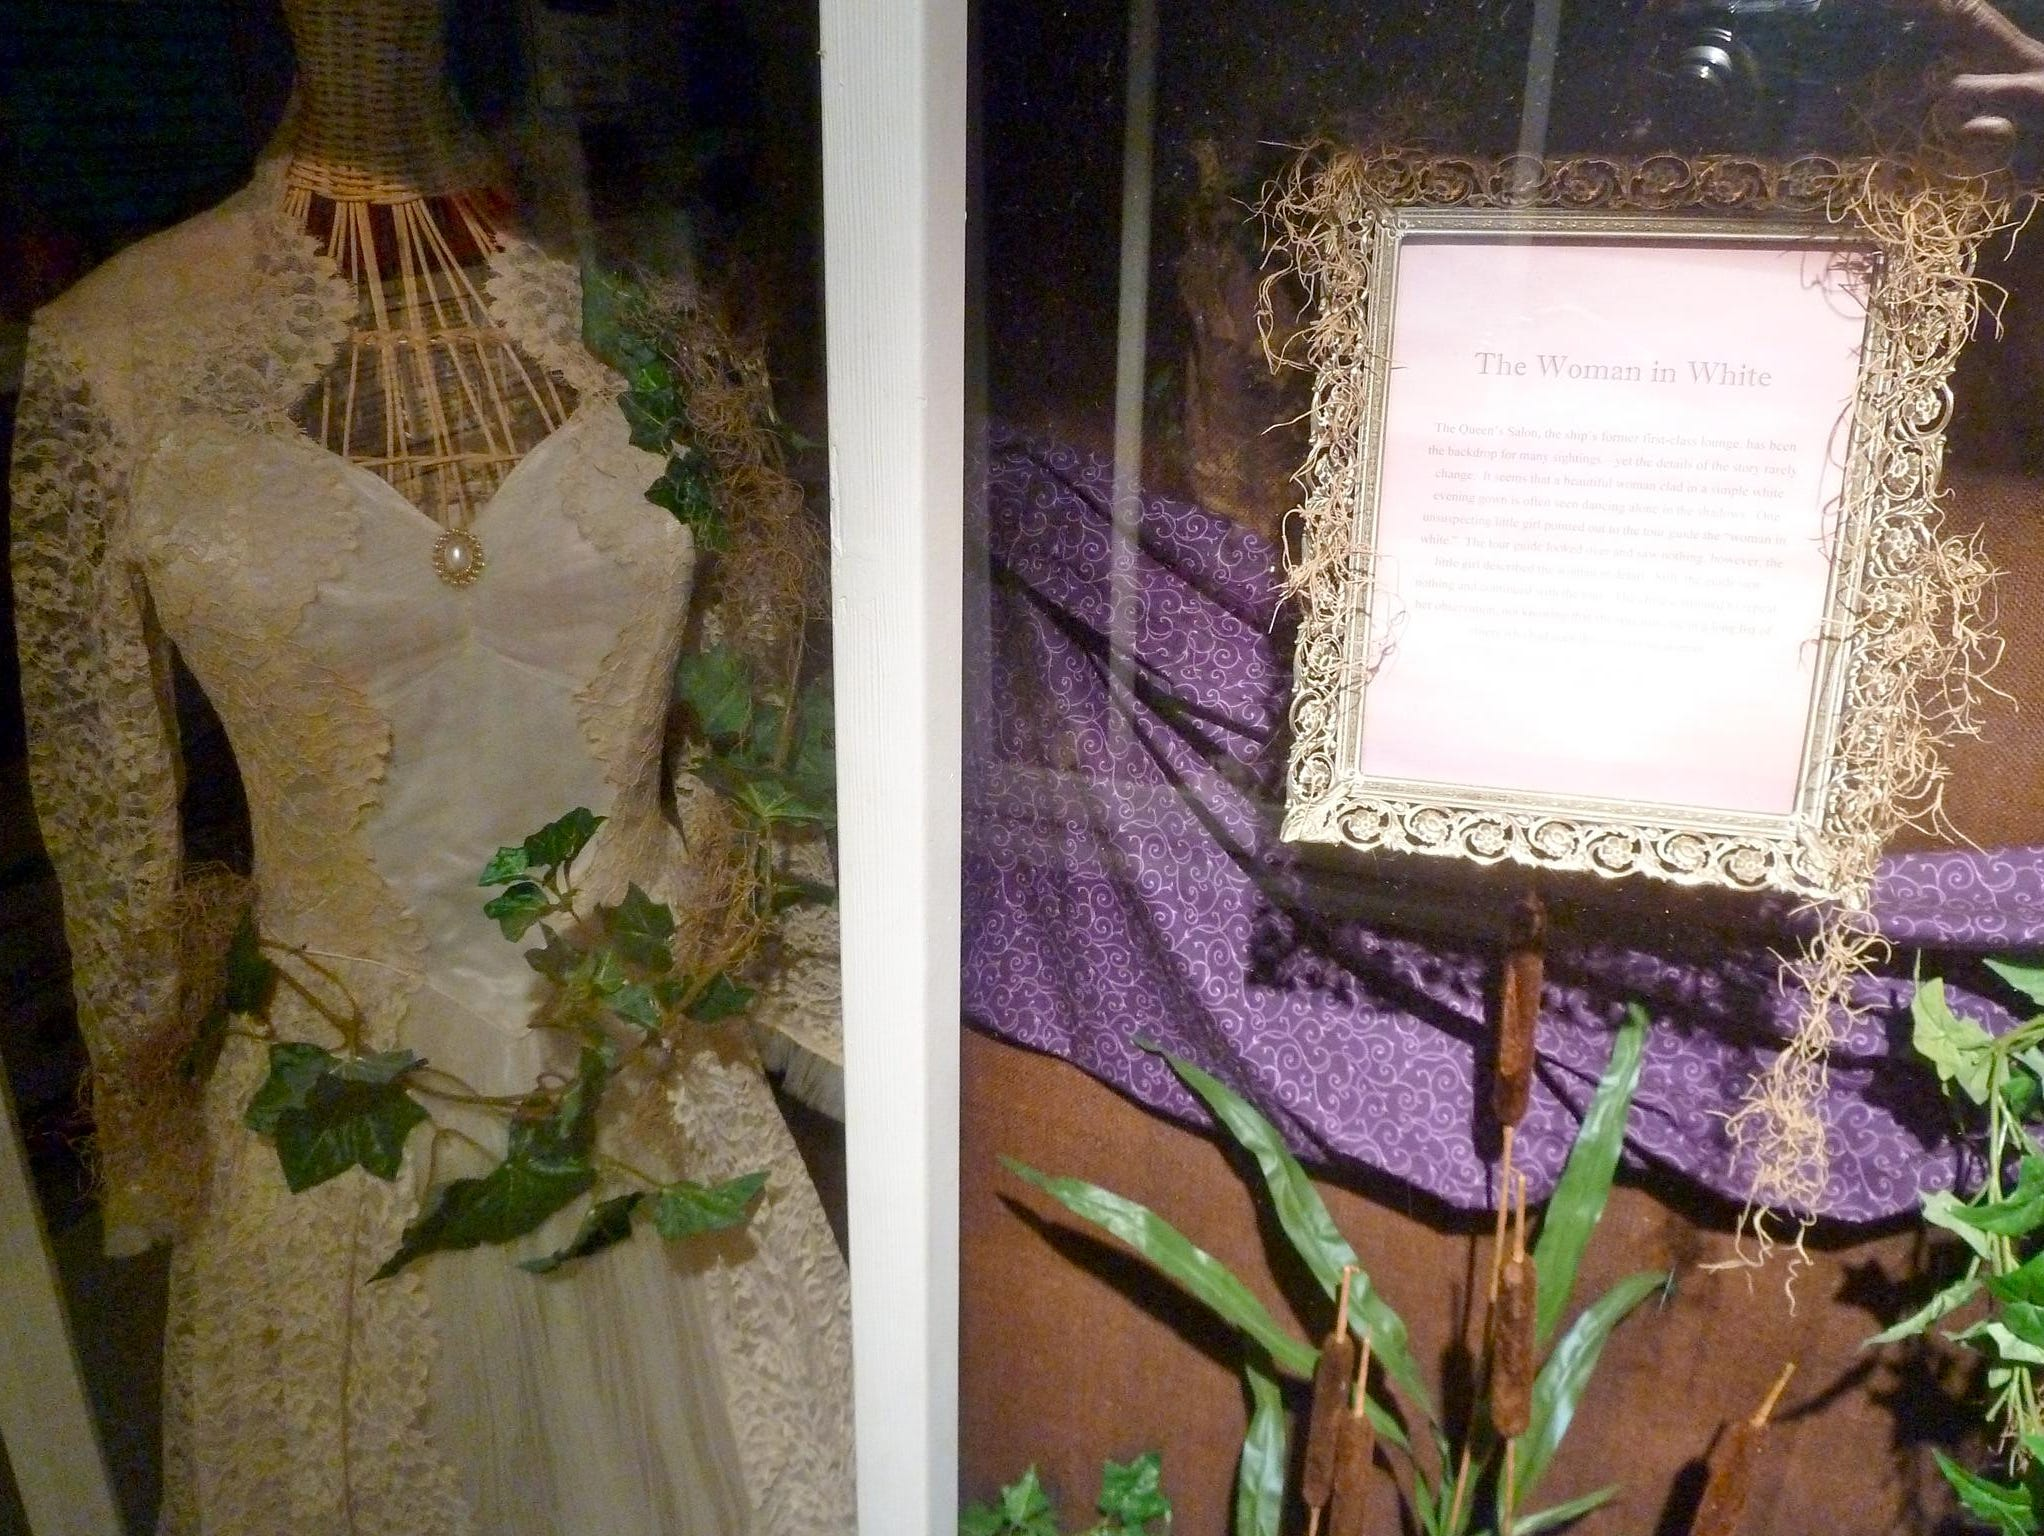 One particularly well-known entity is 'The Woman In White.' Numerous exhibits and displays tell of other ghostly apparitions.